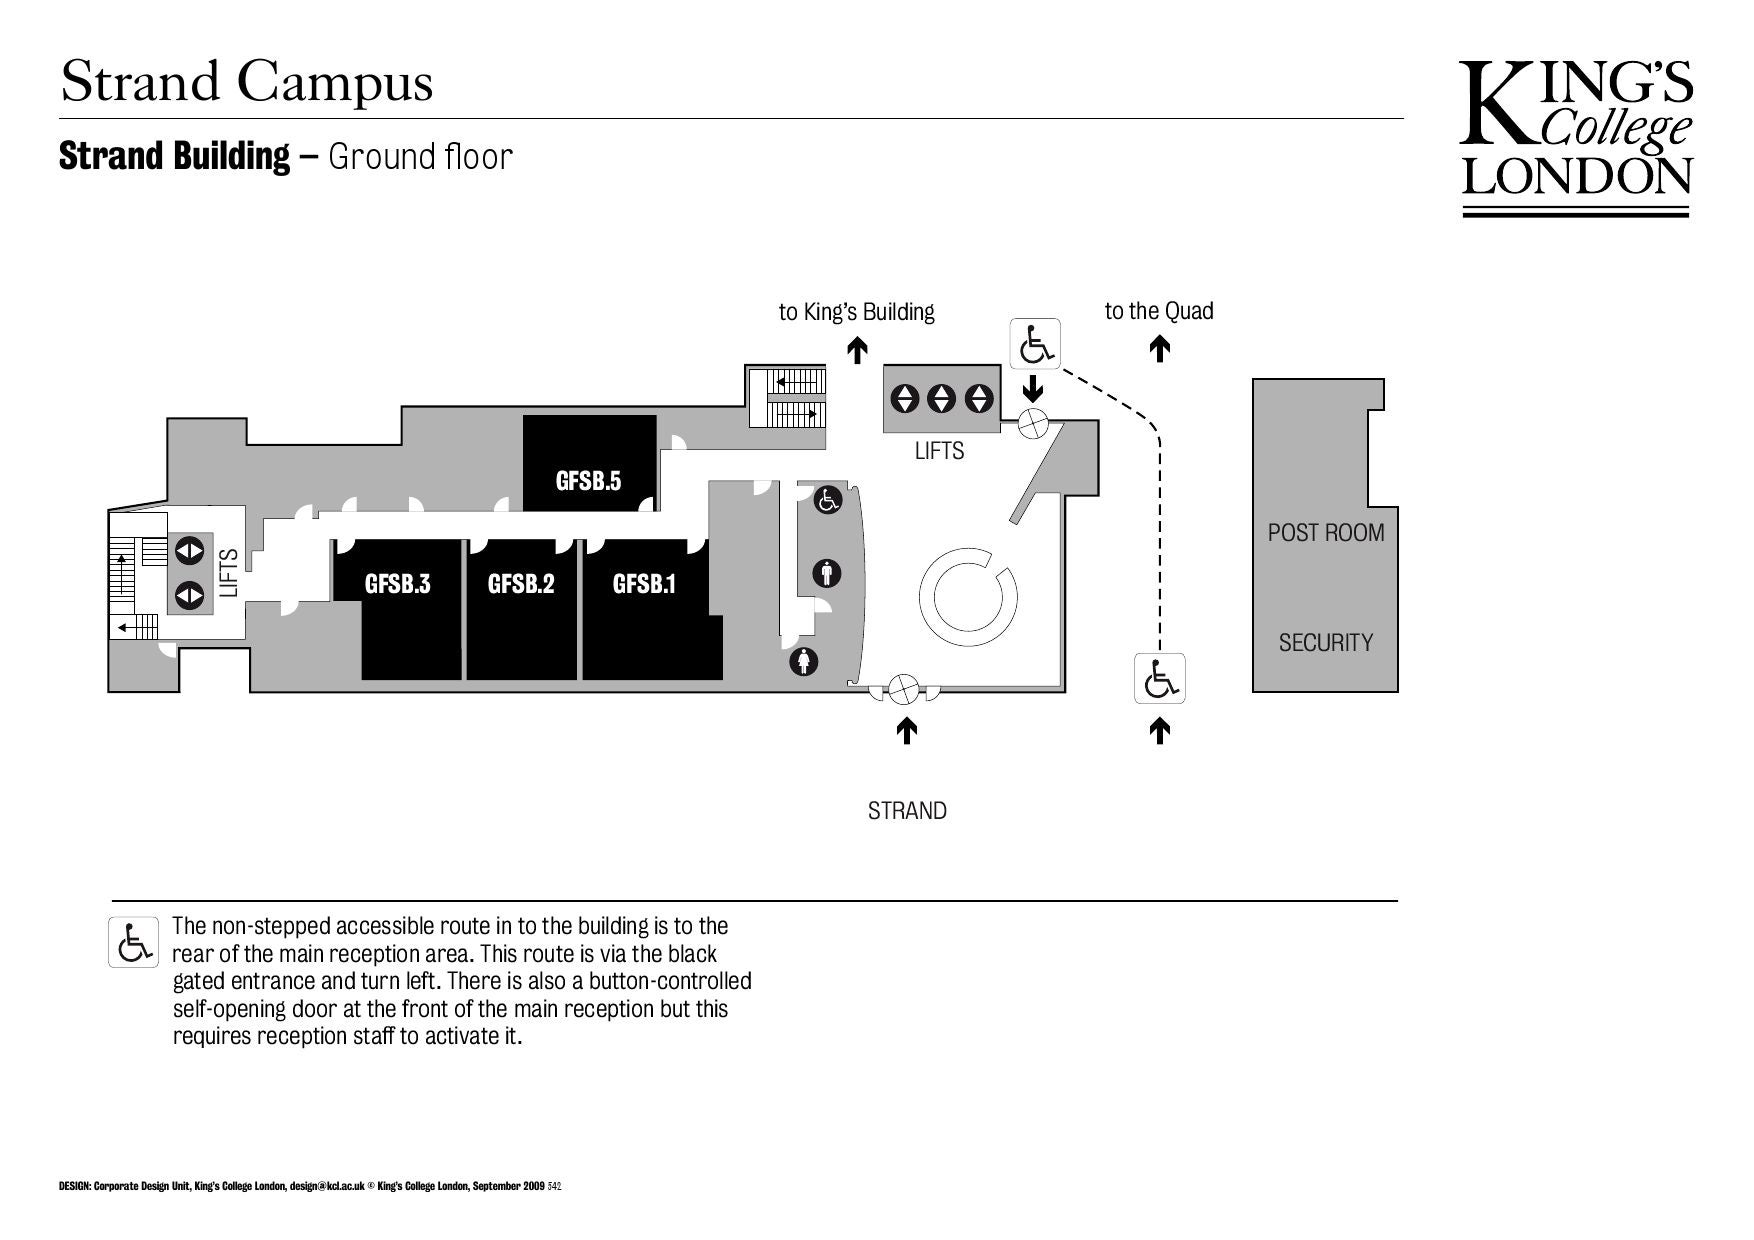 King S College Campus Map on king's college charlotte nc dorms, king's college wrestling, gordon campus map, washington adventist university campus map, tarleton state campus map, chestnut hill campus map, university of saint francis campus map, mary baldwin campus map, caldwell university campus map, swedish hospital seattle campus map, webster campus map, uhv campus map, malone campus map, armstrong state university campus map, gwynedd mercy university campus map, rmu campus map, ecpi university campus map, penn state lehigh valley campus map, everest university campus map, neumont university campus map,